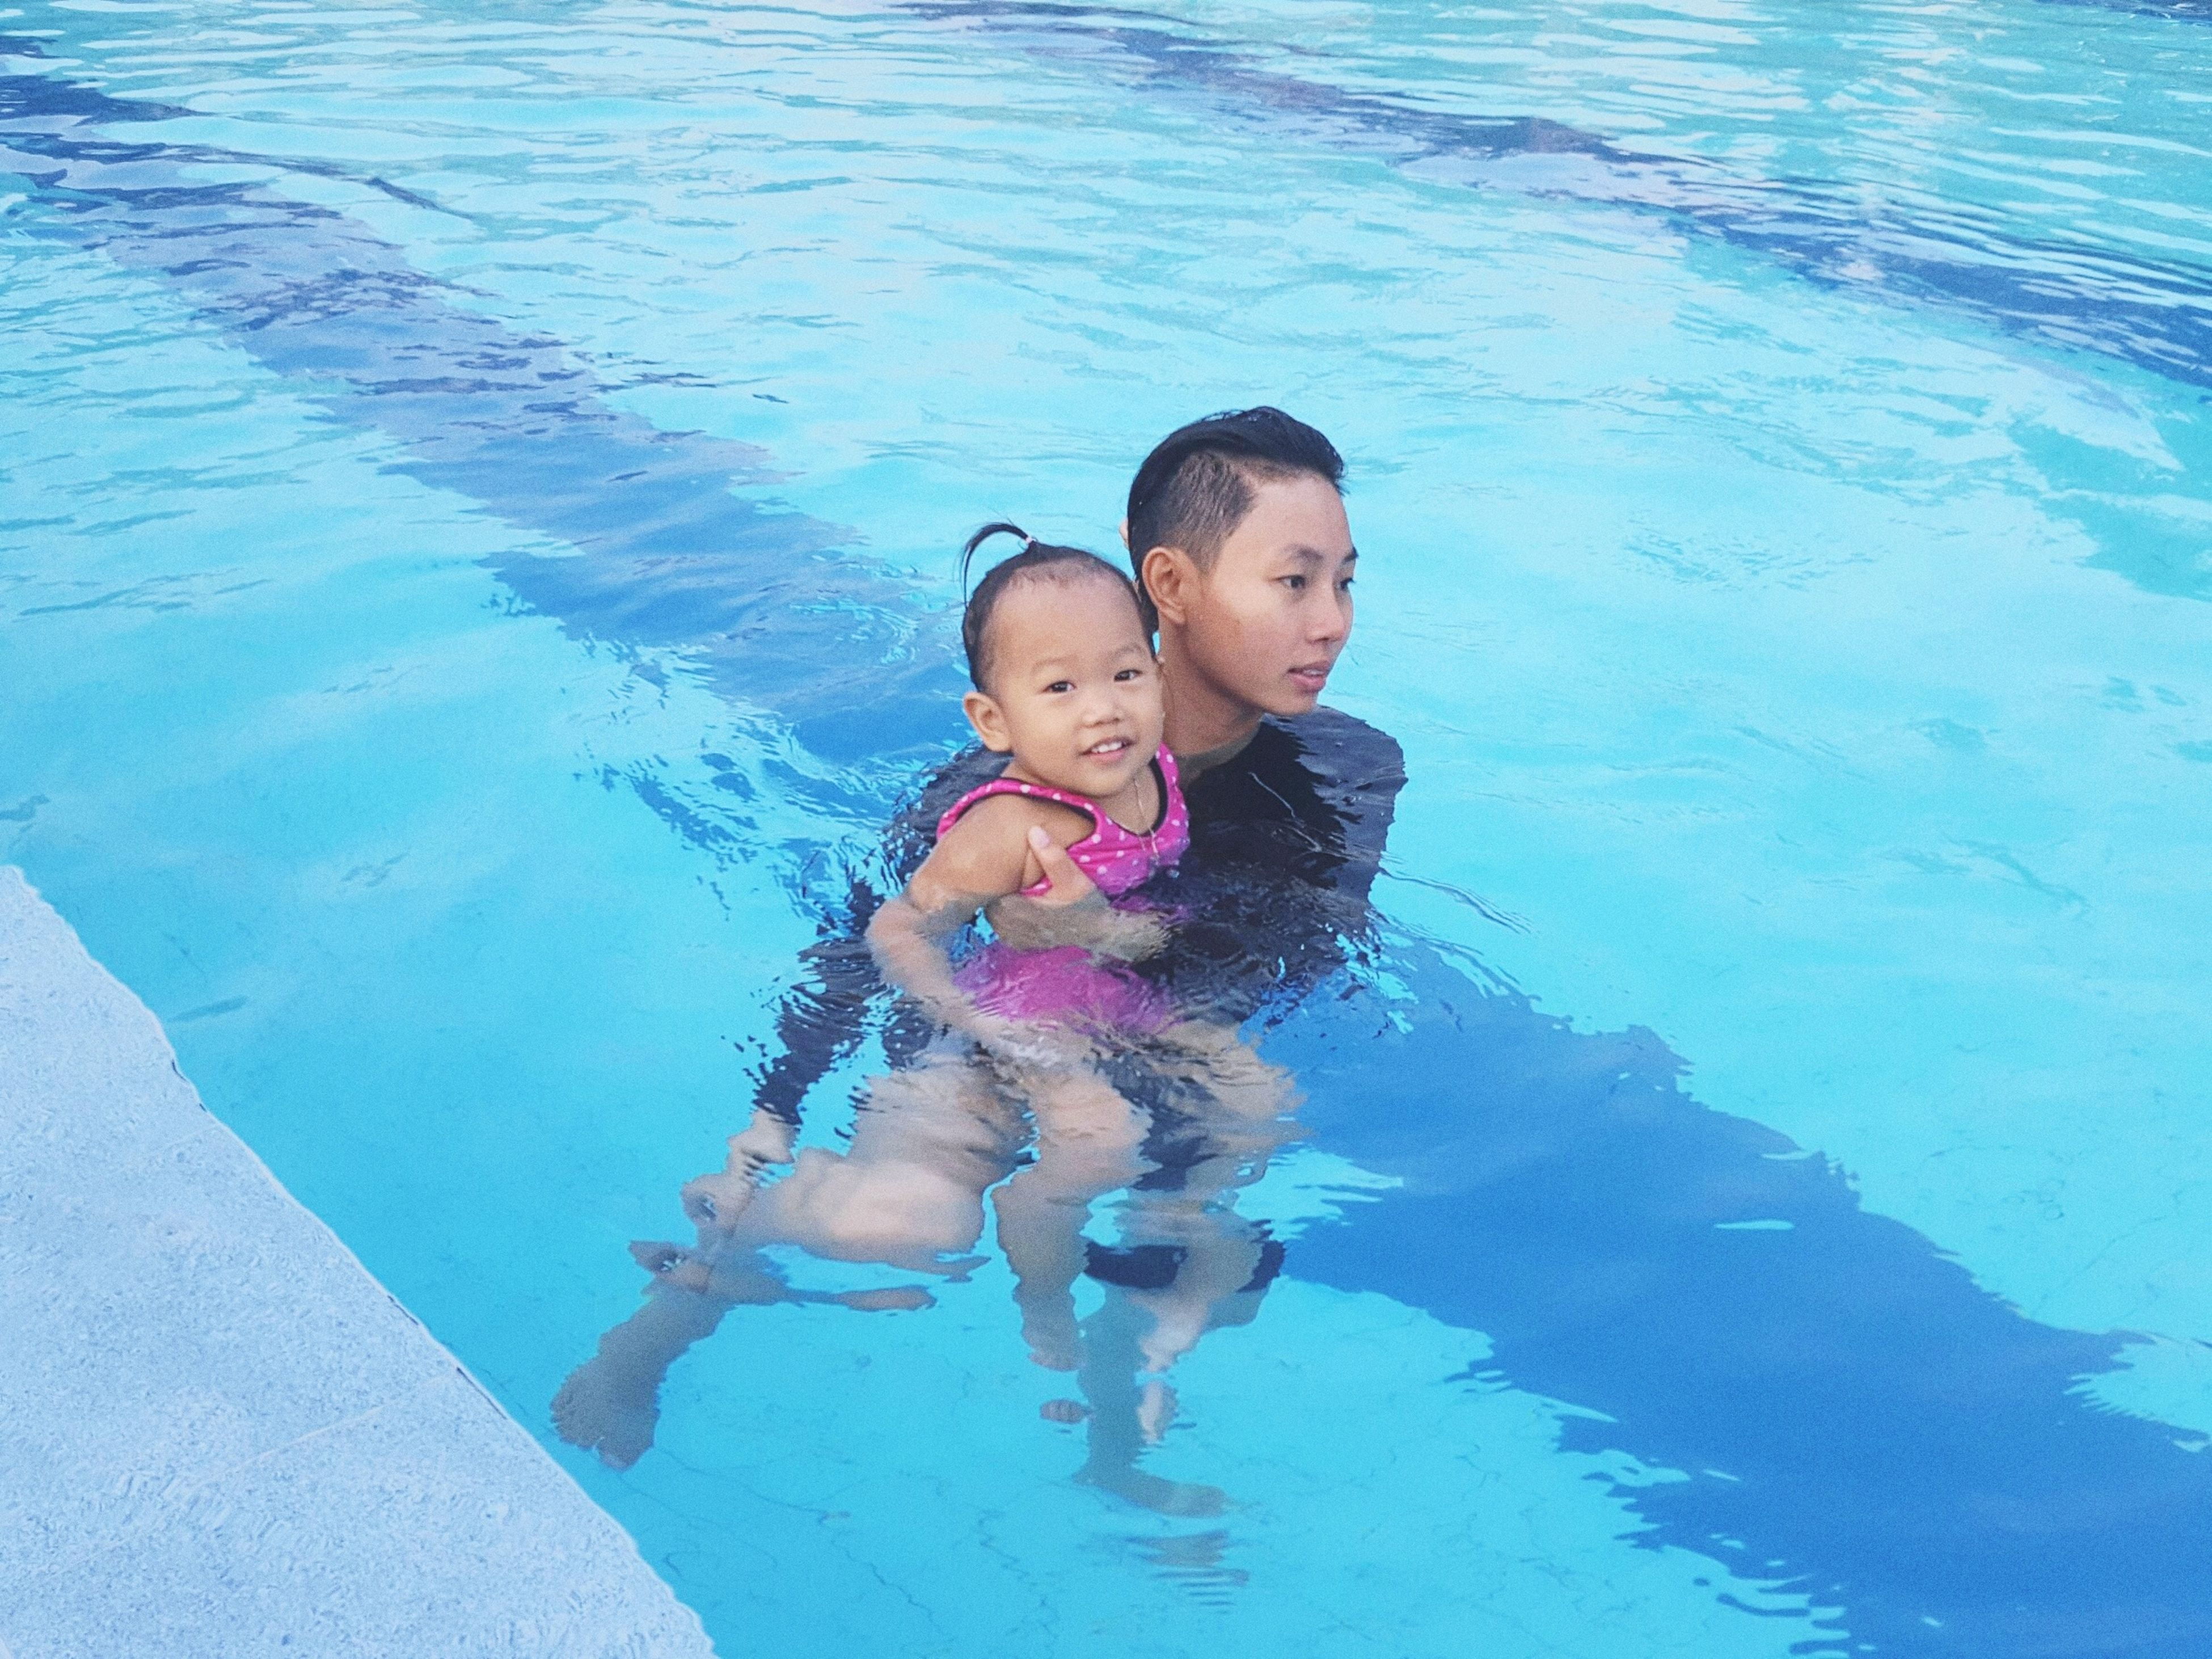 swimming pool, child, two people, water, togetherness, childhood, family, bonding, females, outdoors, people, day, adult